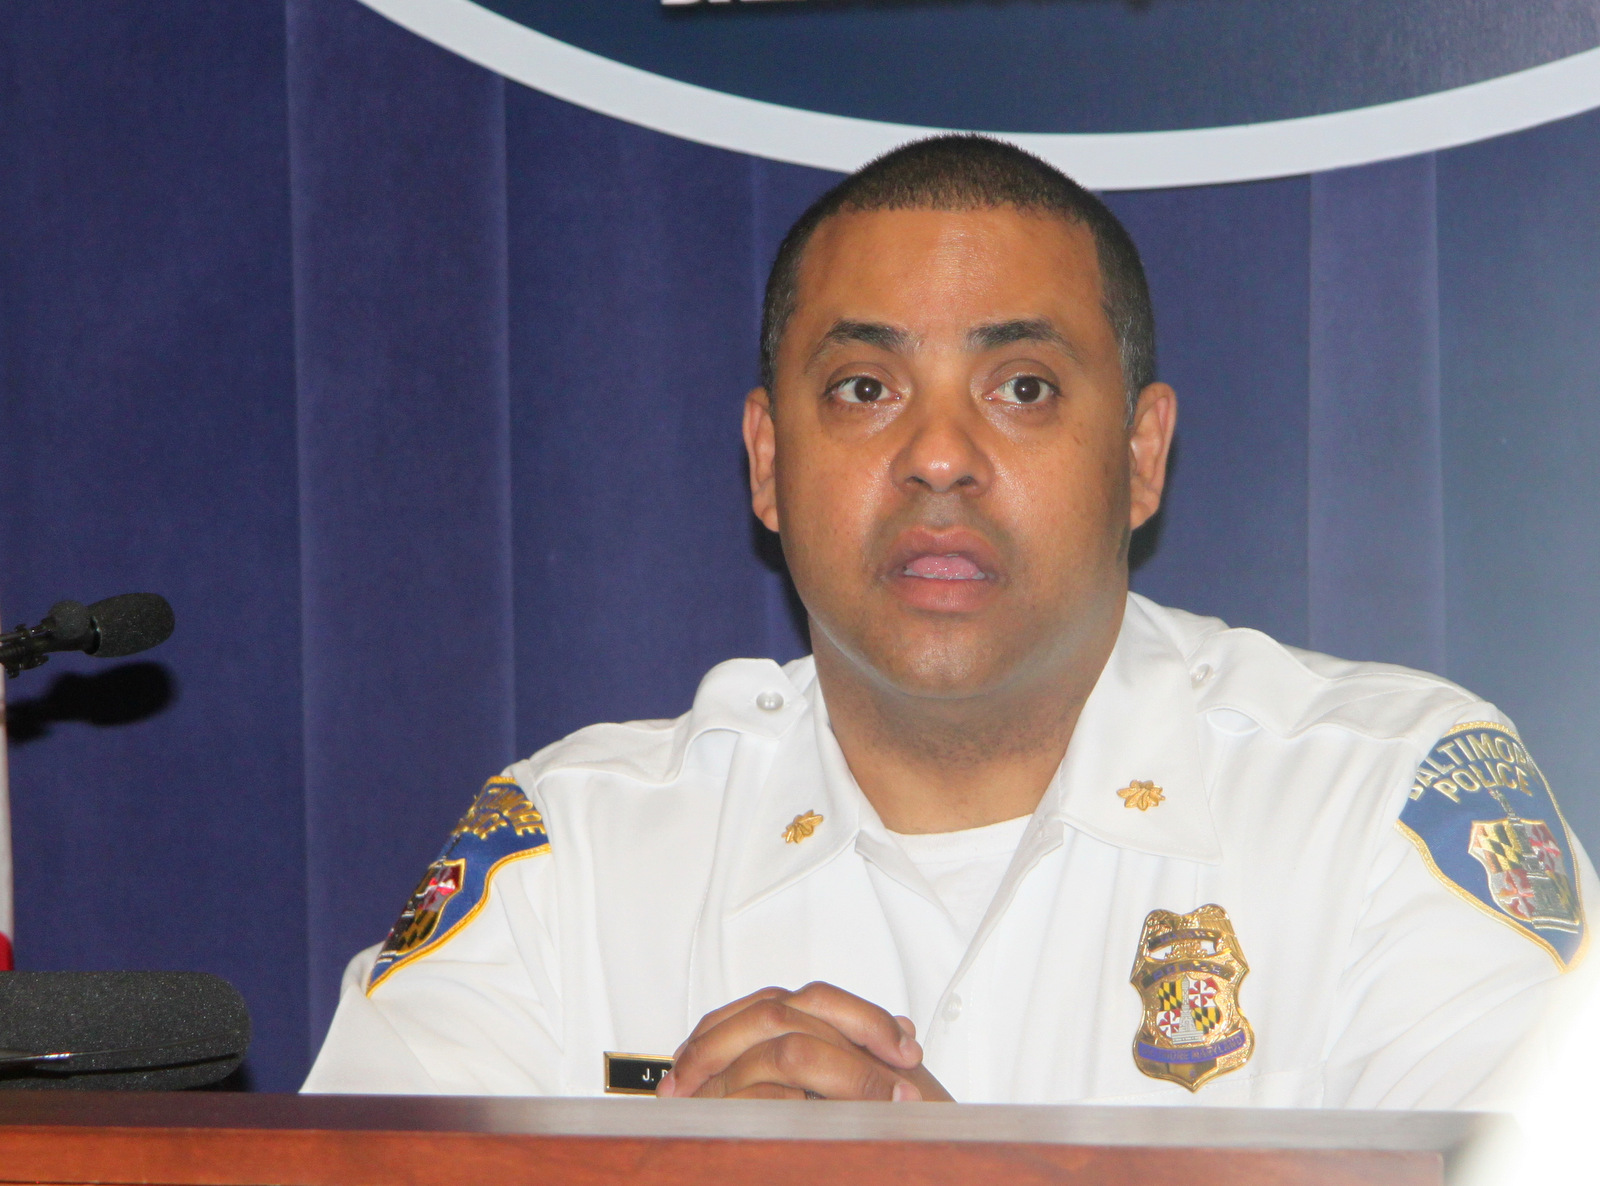 Maj. Johnny Delgado, announcing Baltimore Police Department initiative to encourage reporting of illegal dirt bikes.